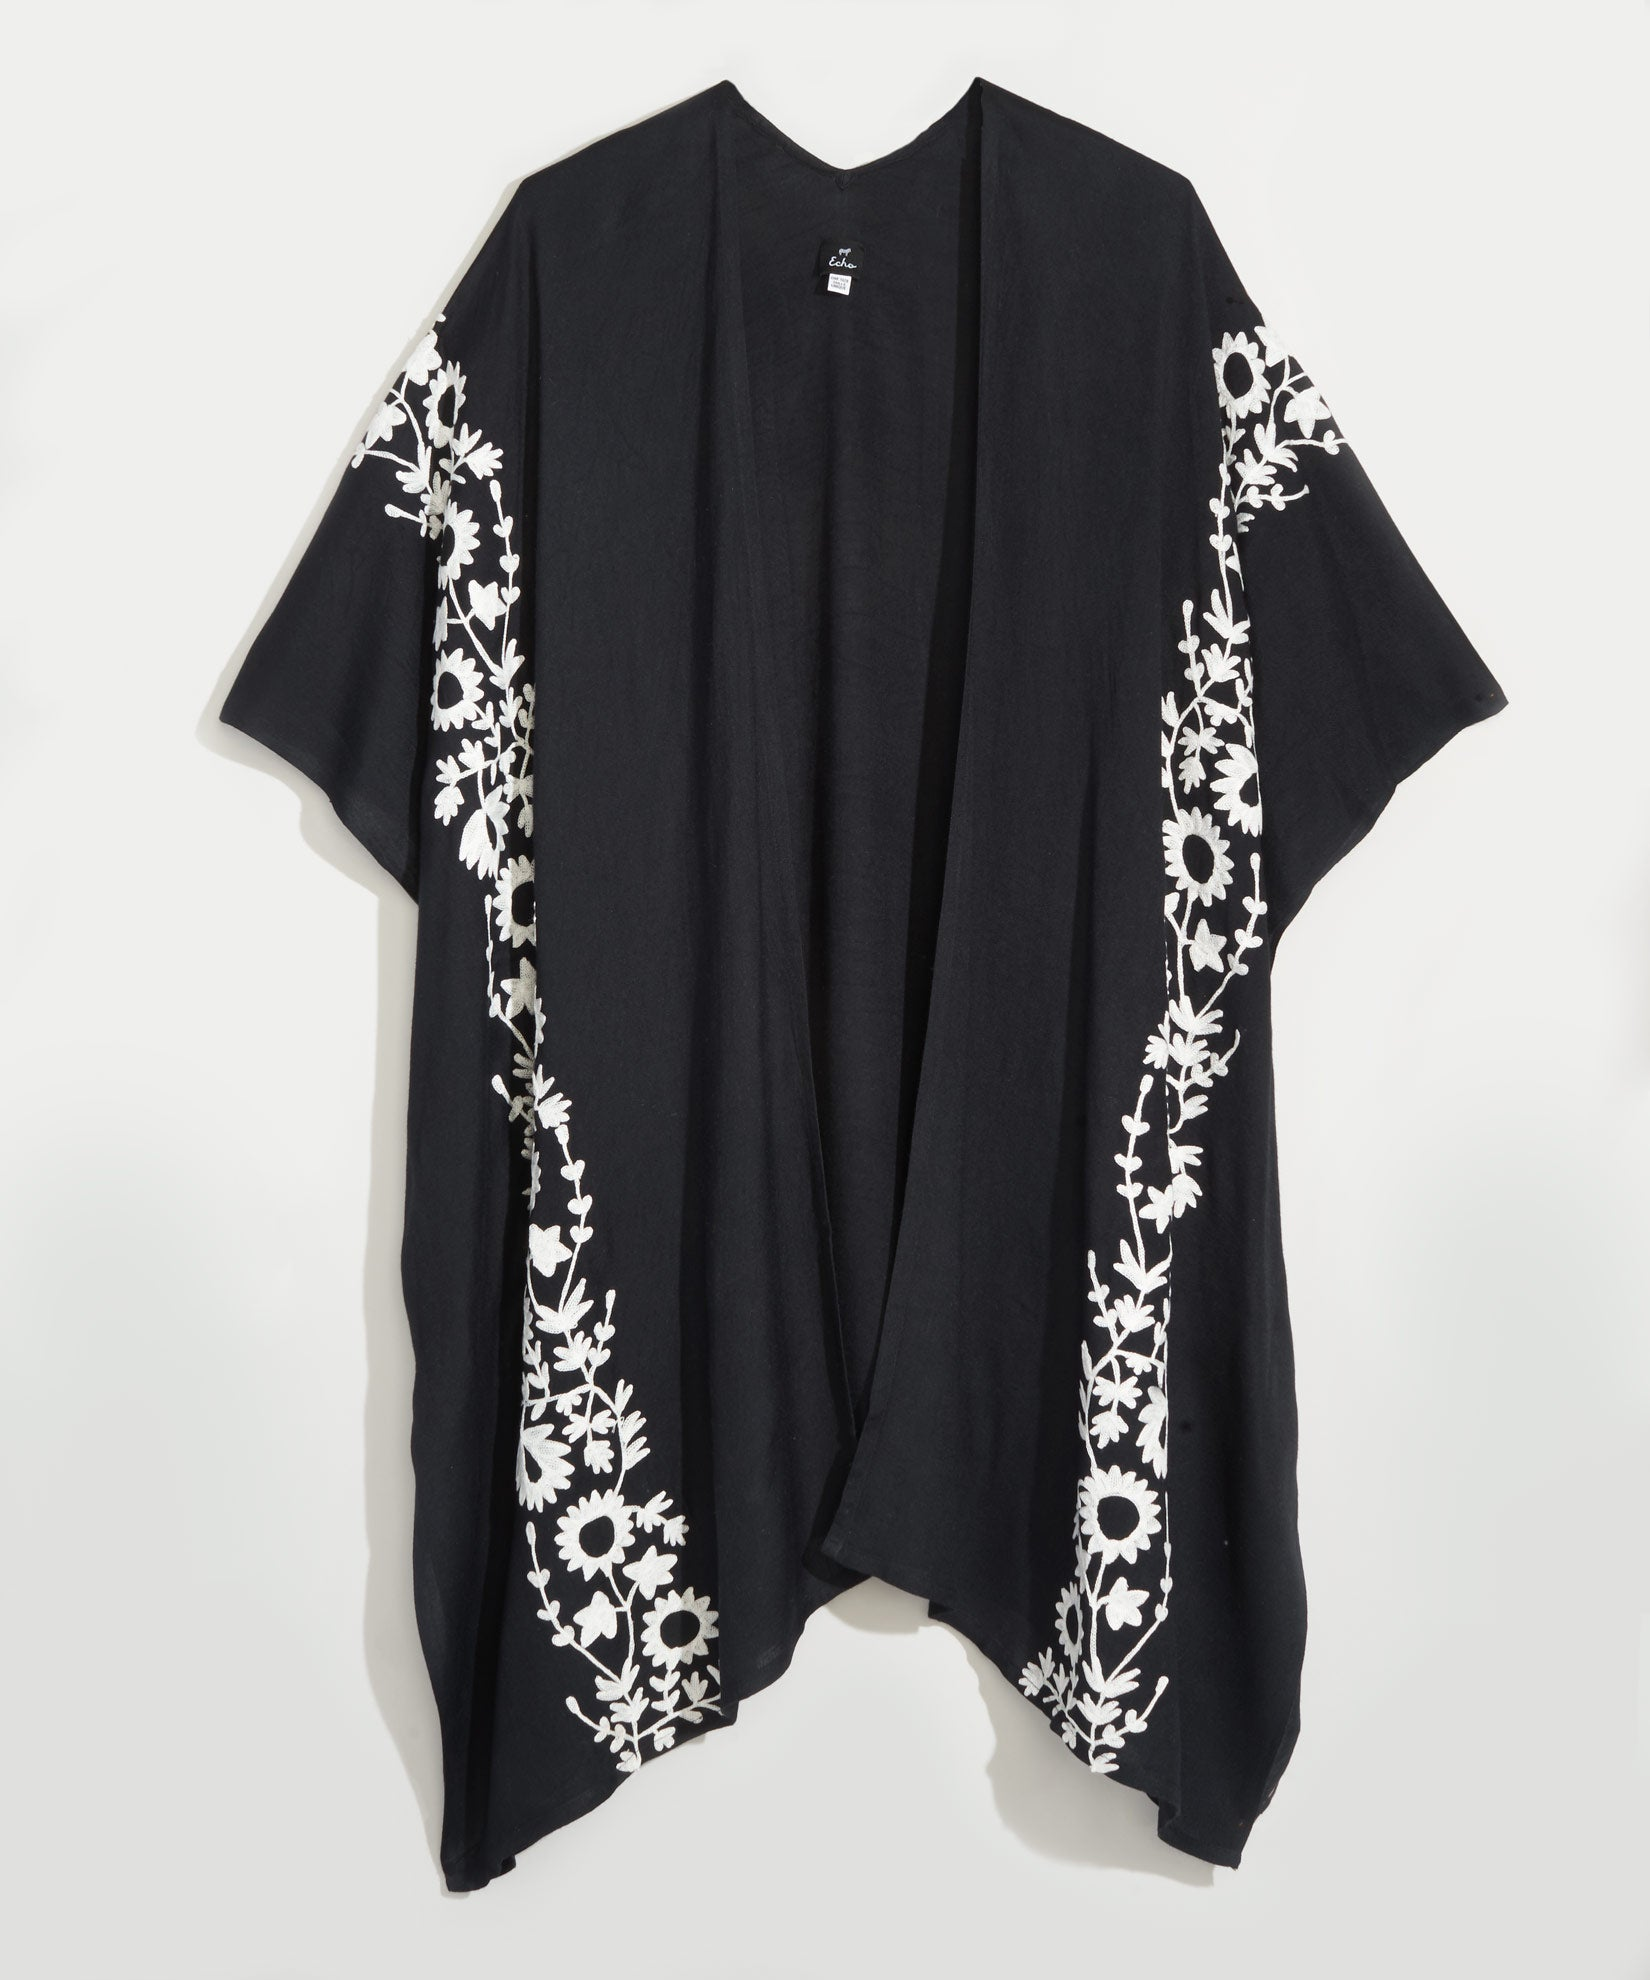 Black - Floral Embroiodery Open Cardi